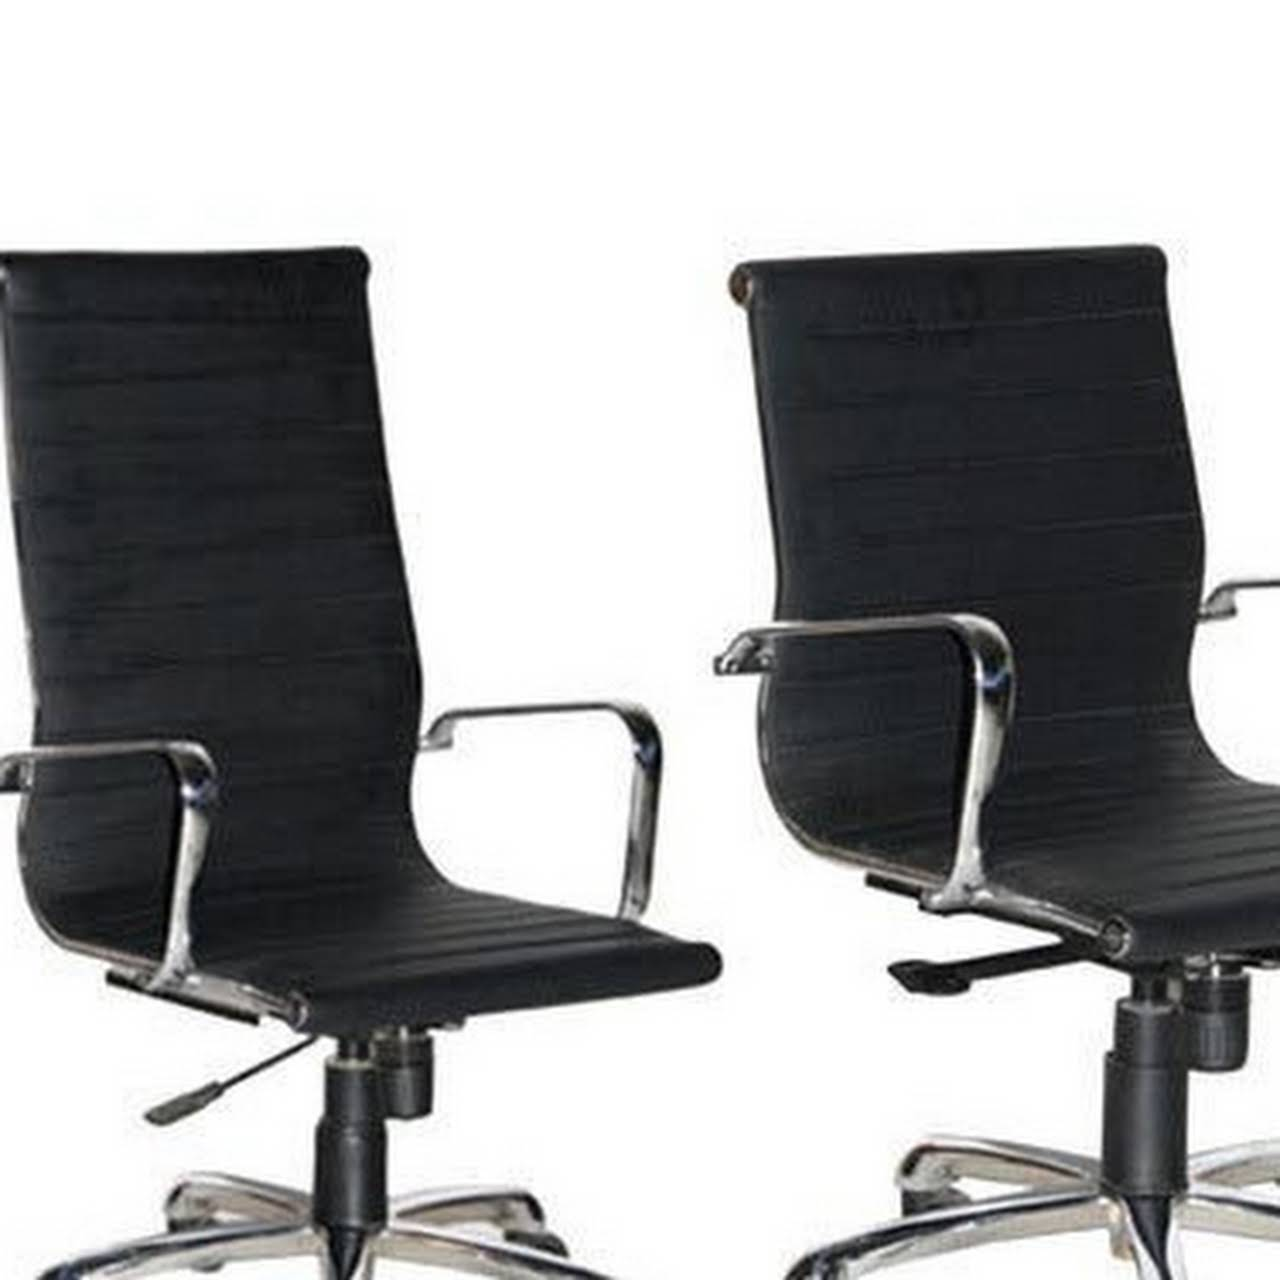 office chair qvc black porch rocking chairs shikha house furniture maker in ahmedabad posted on aug 17 2018